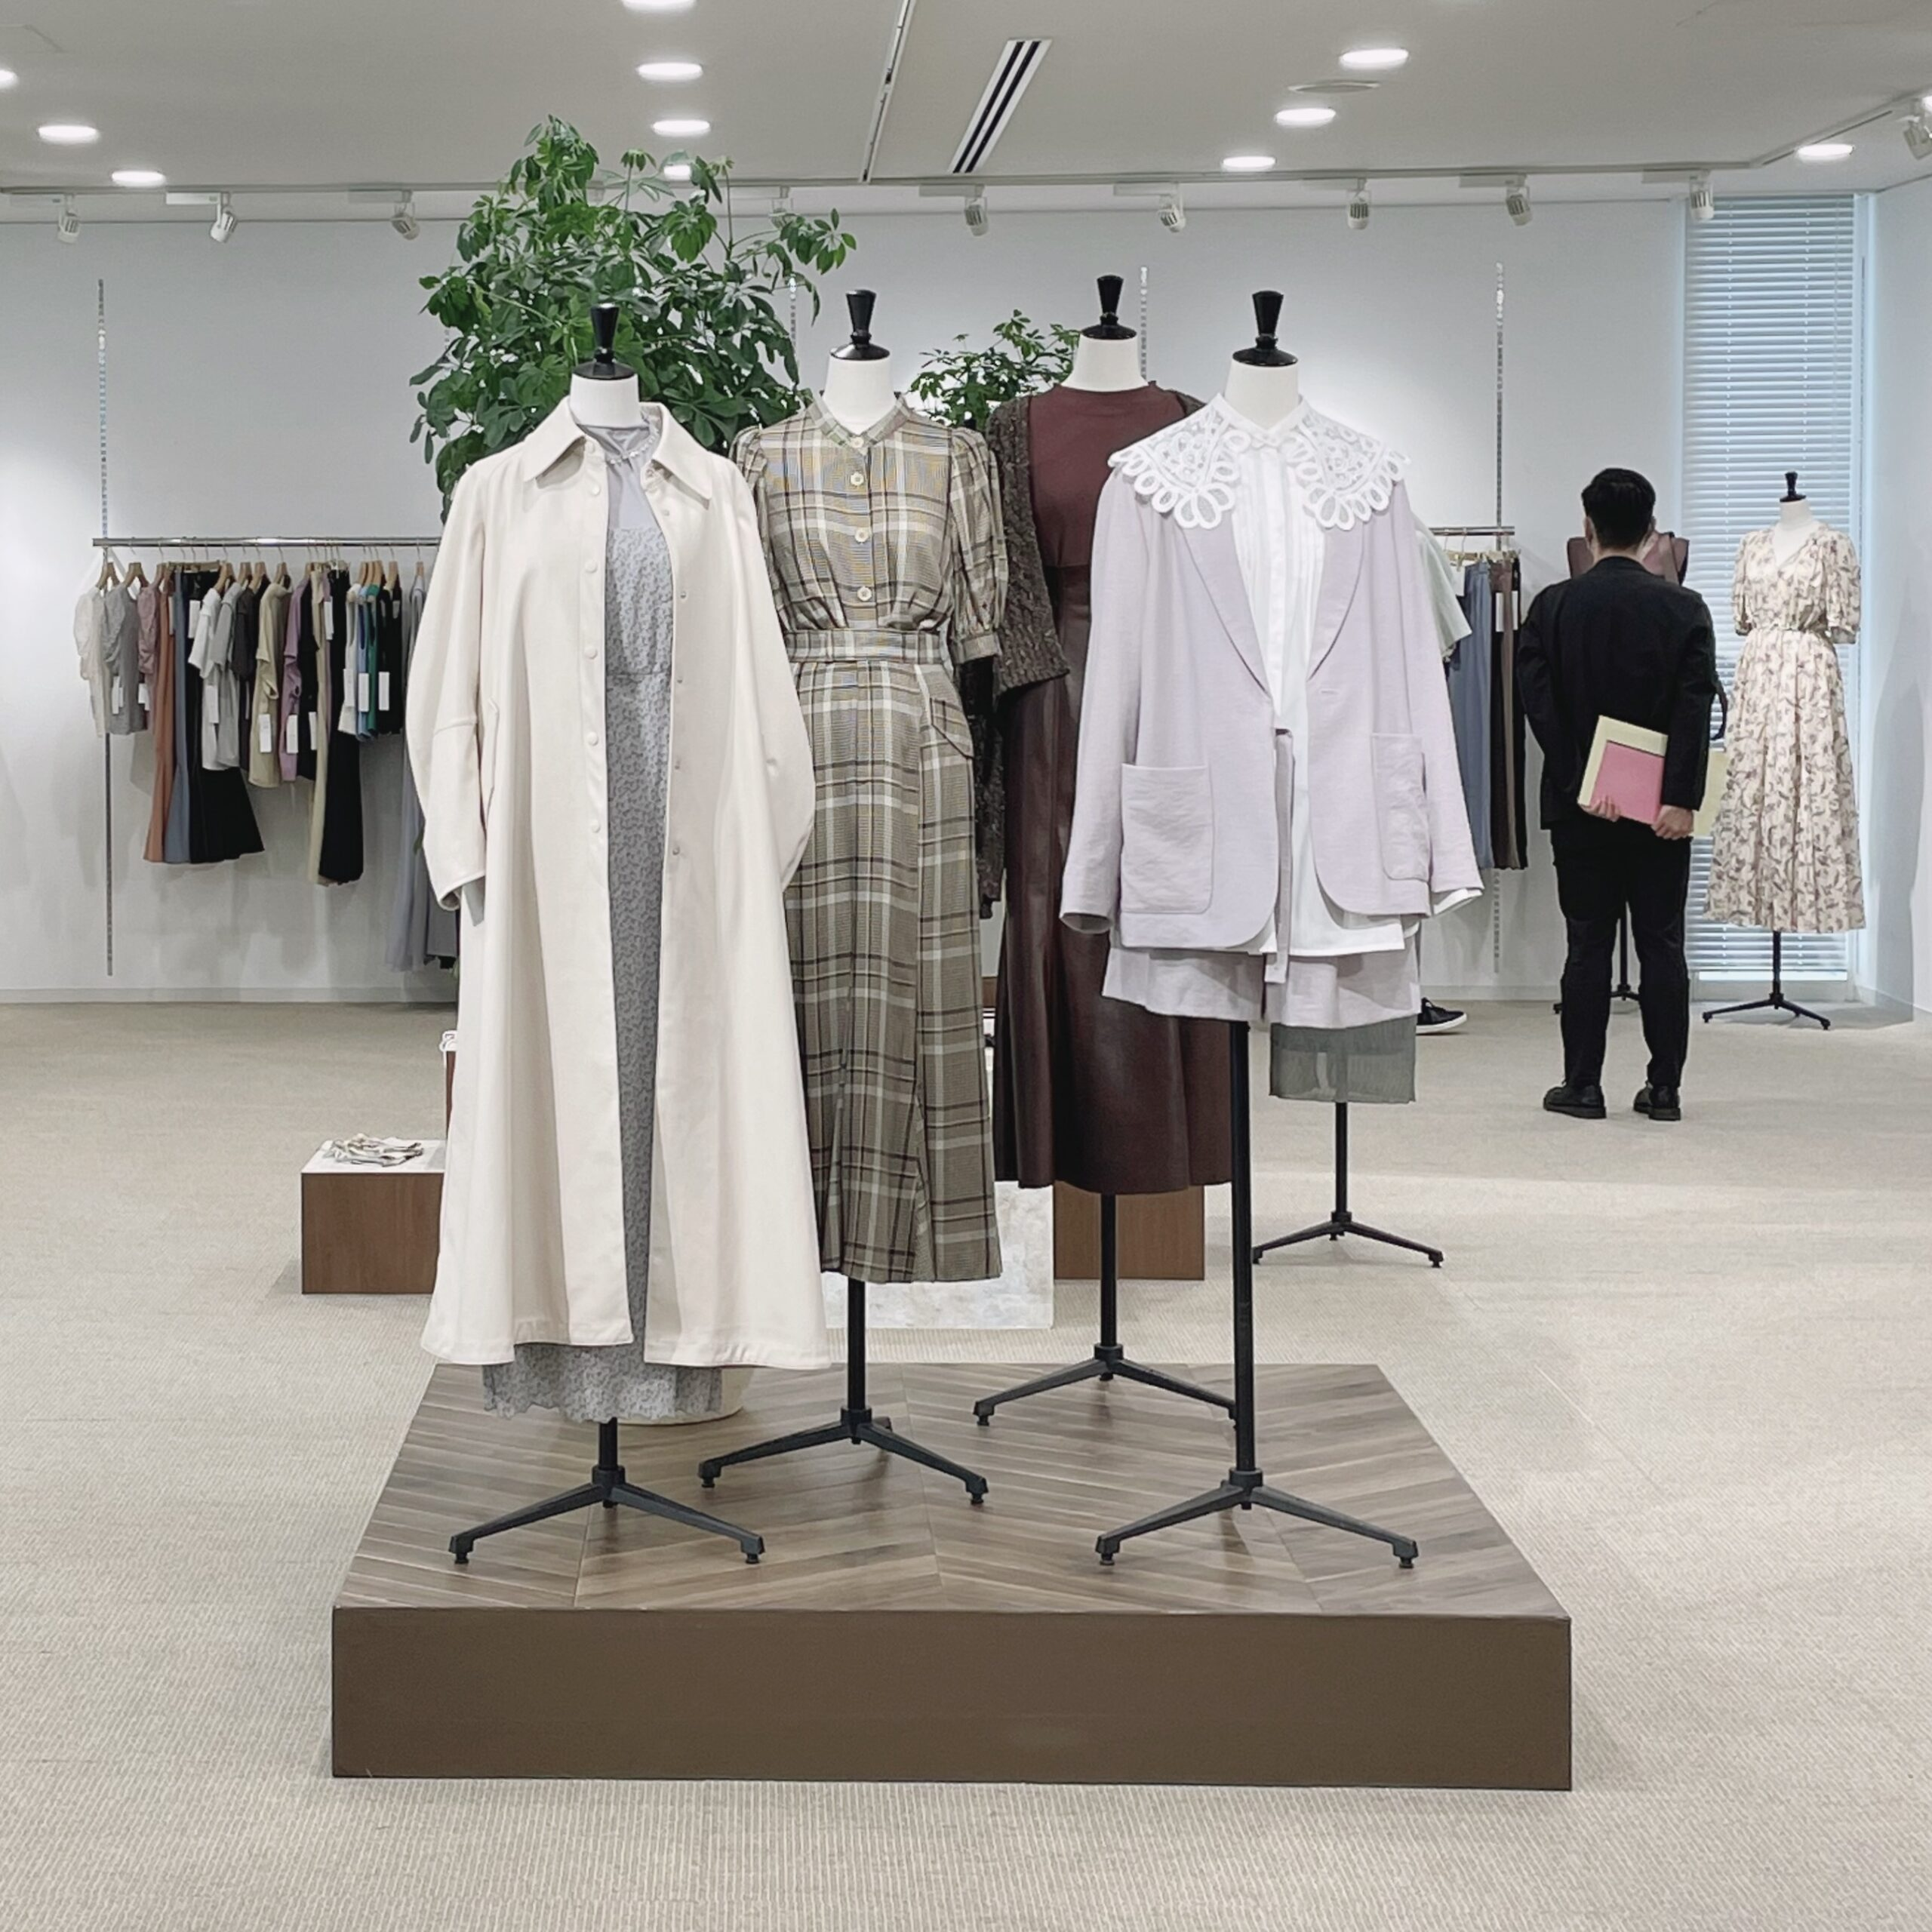 COCO DEAL展示会